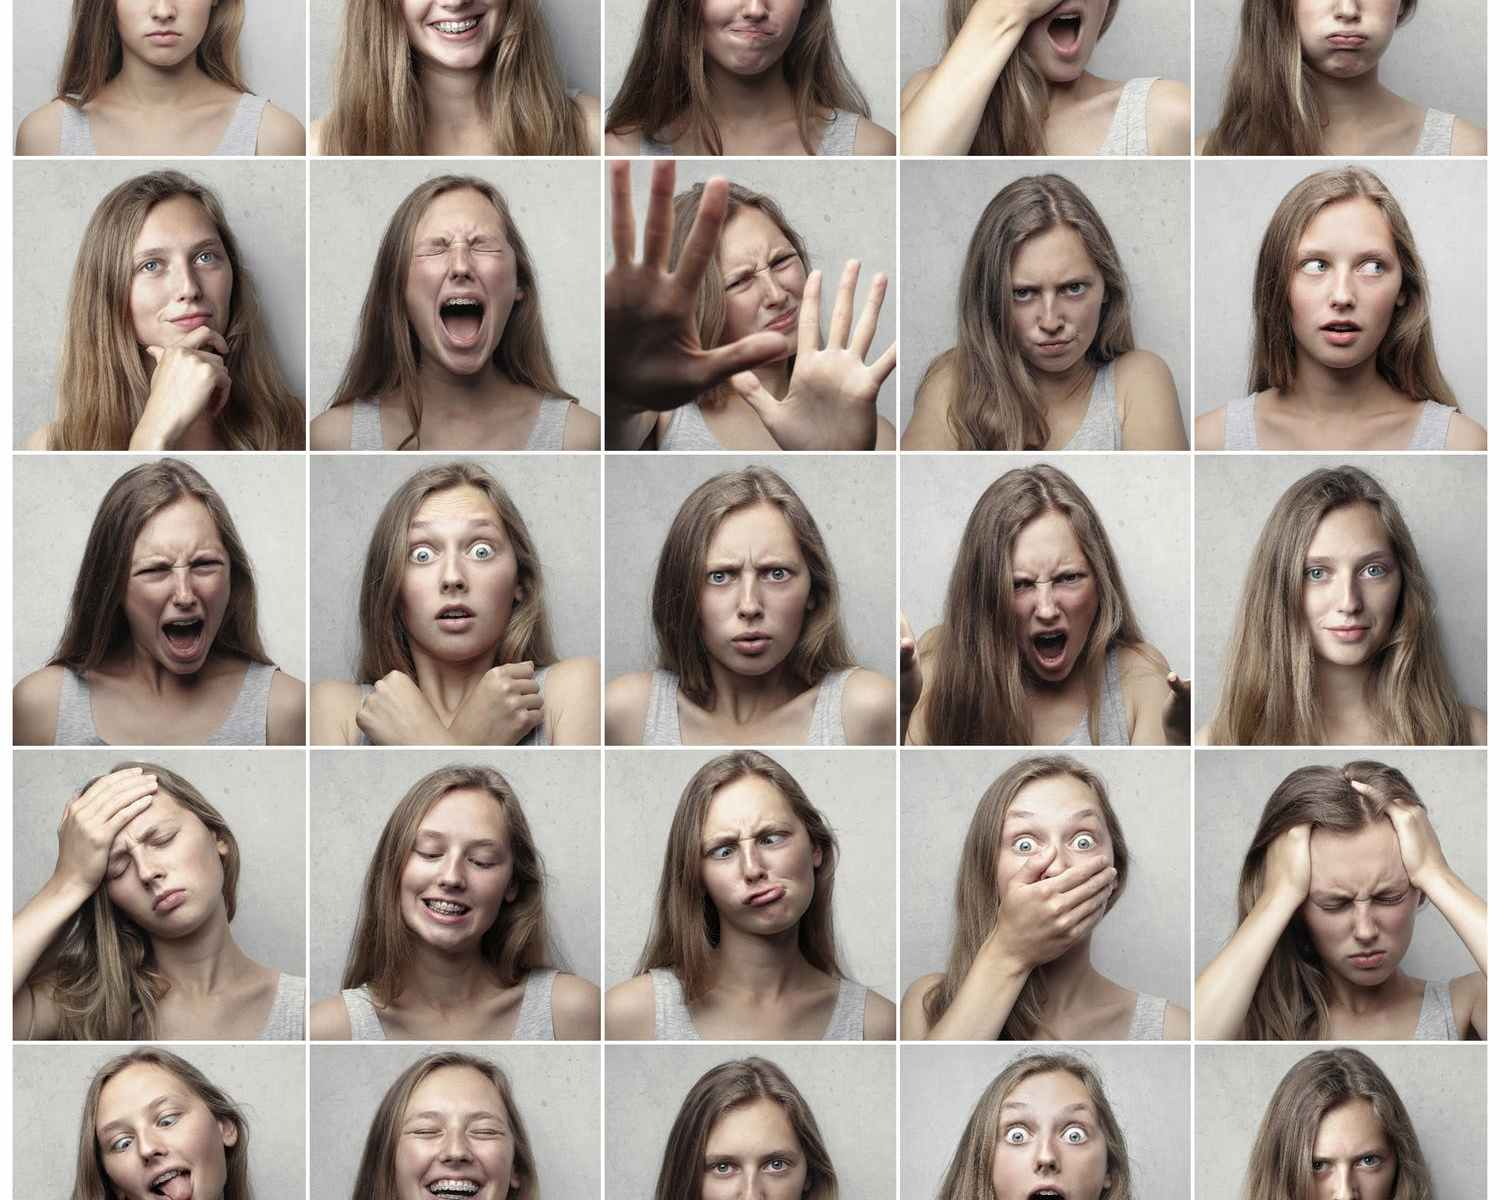 Collection of photos of young blonde woman making many different facial expressions